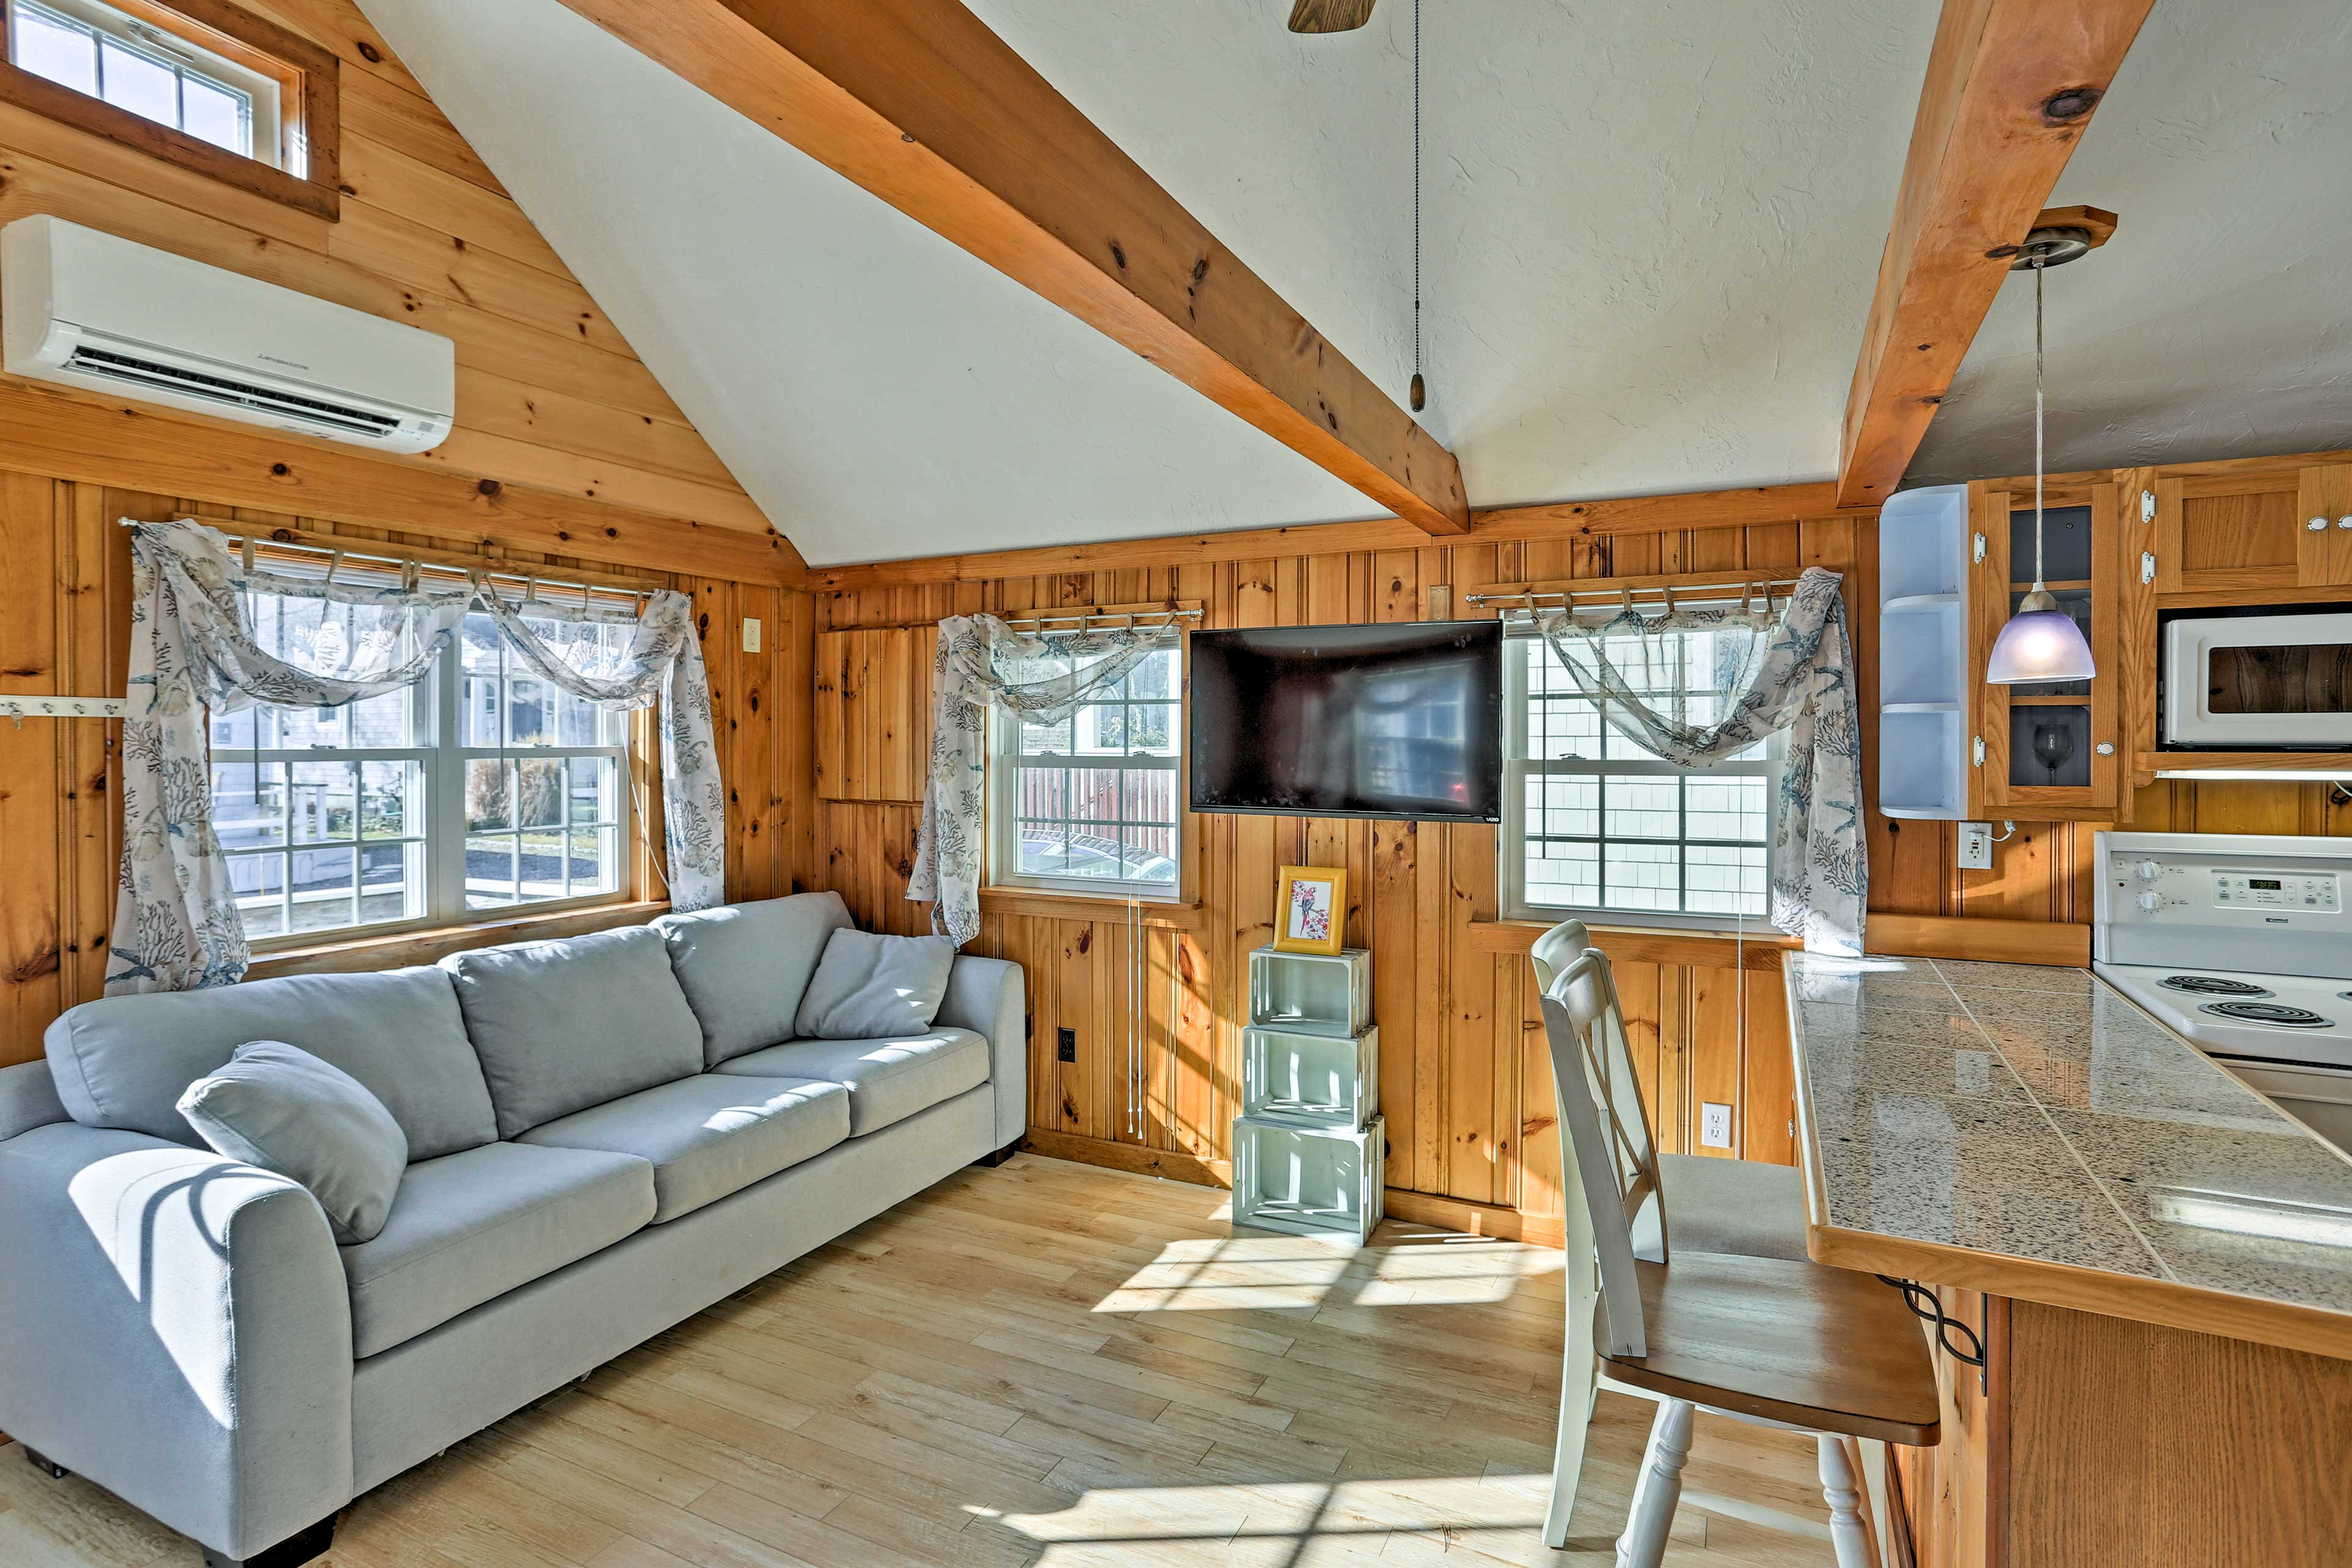 Natural light pours in through the large bay windows.